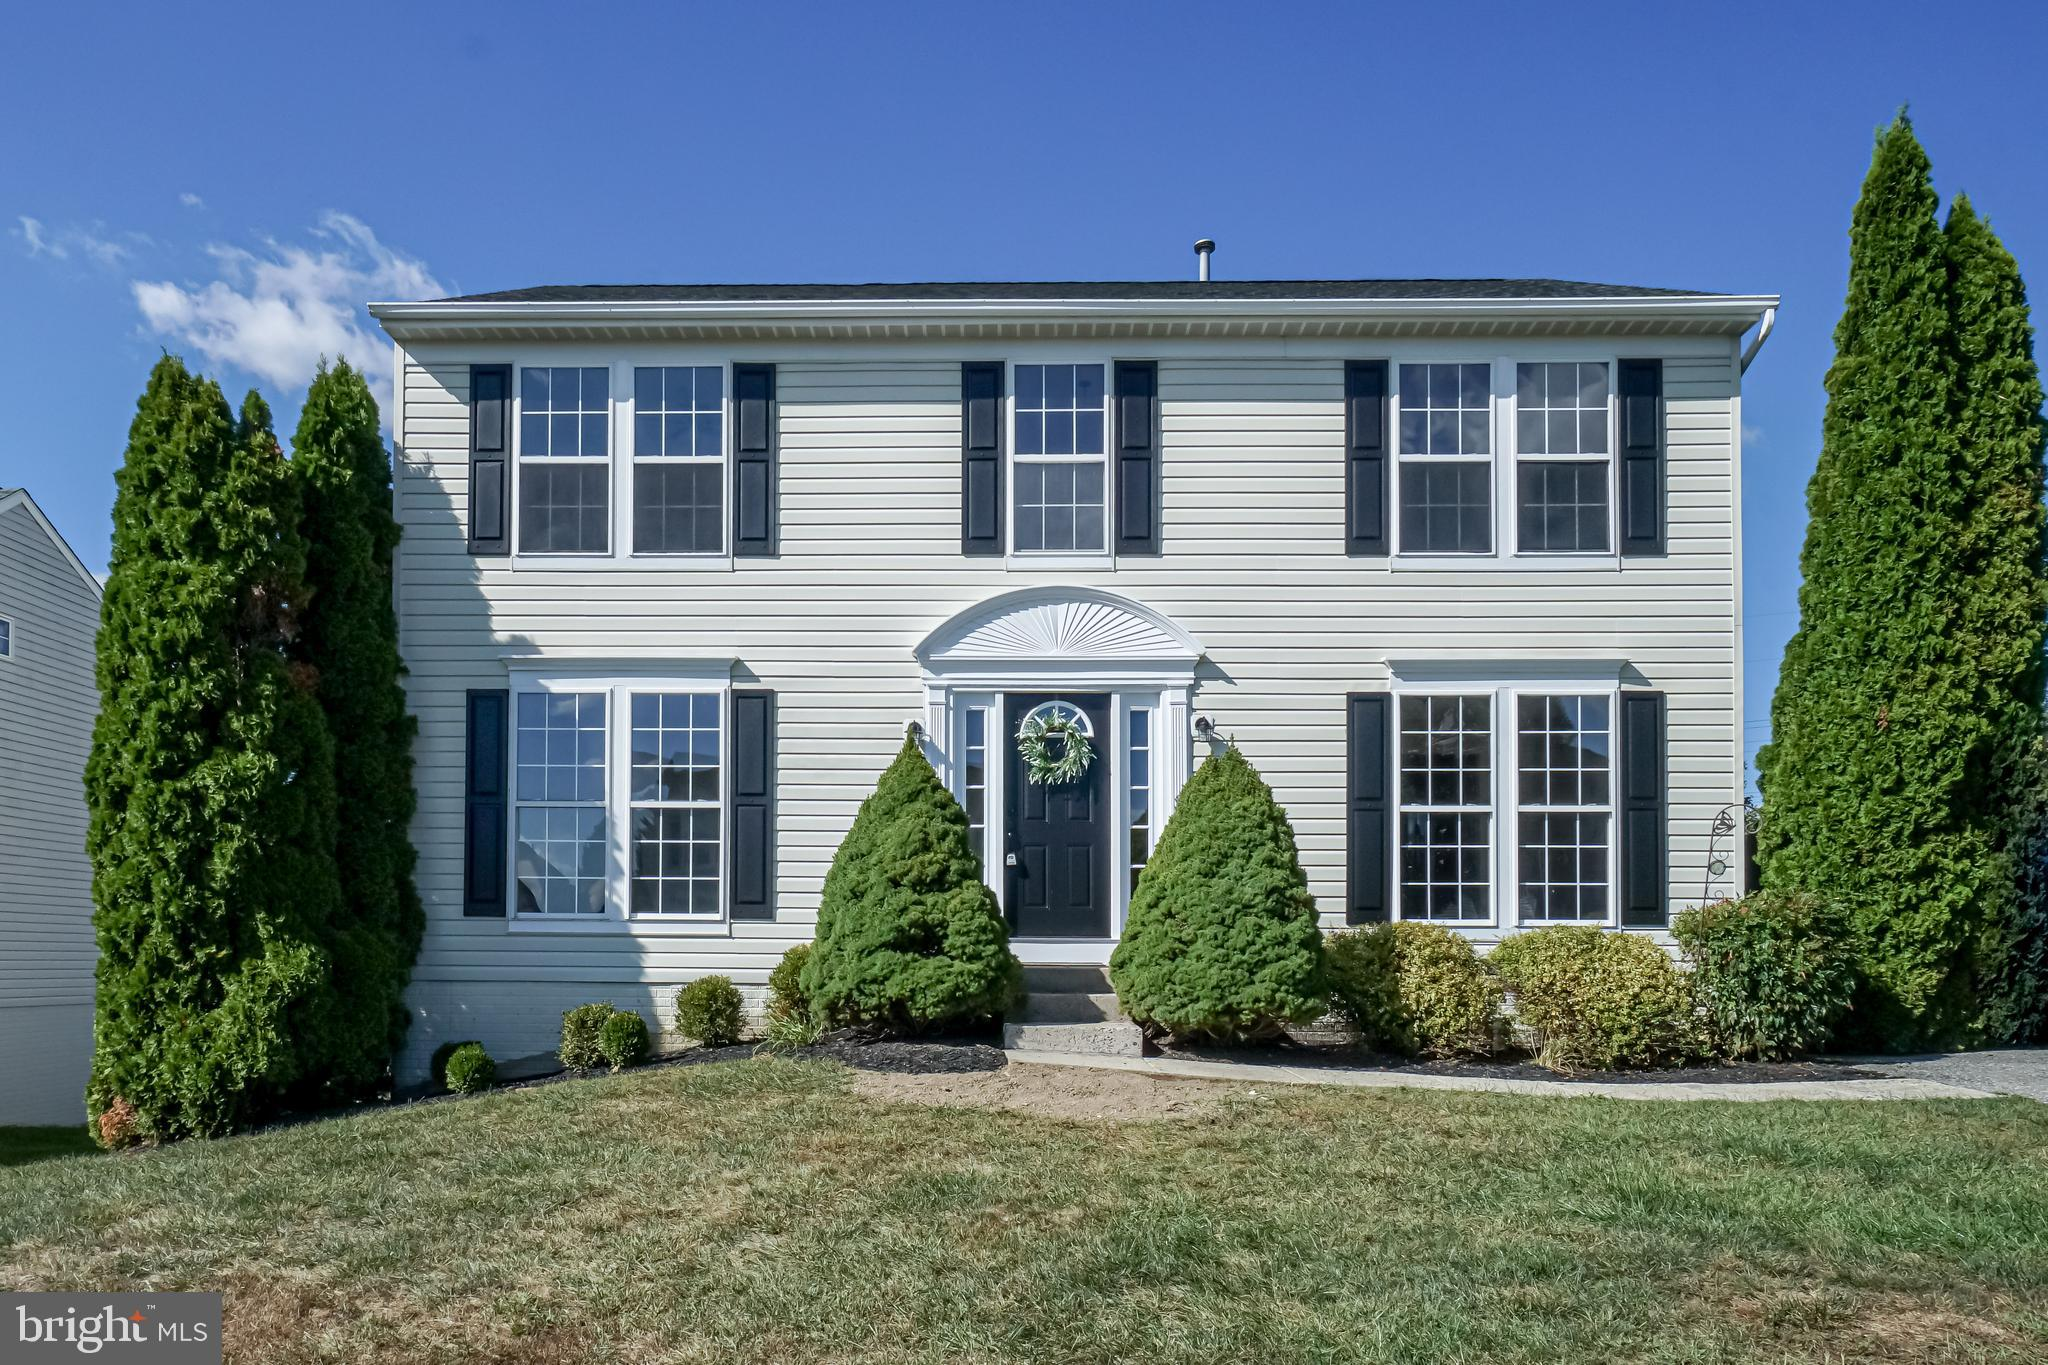 413 W CRAIGHILL CHANNEL DRIVE, PERRYVILLE, MD 21903